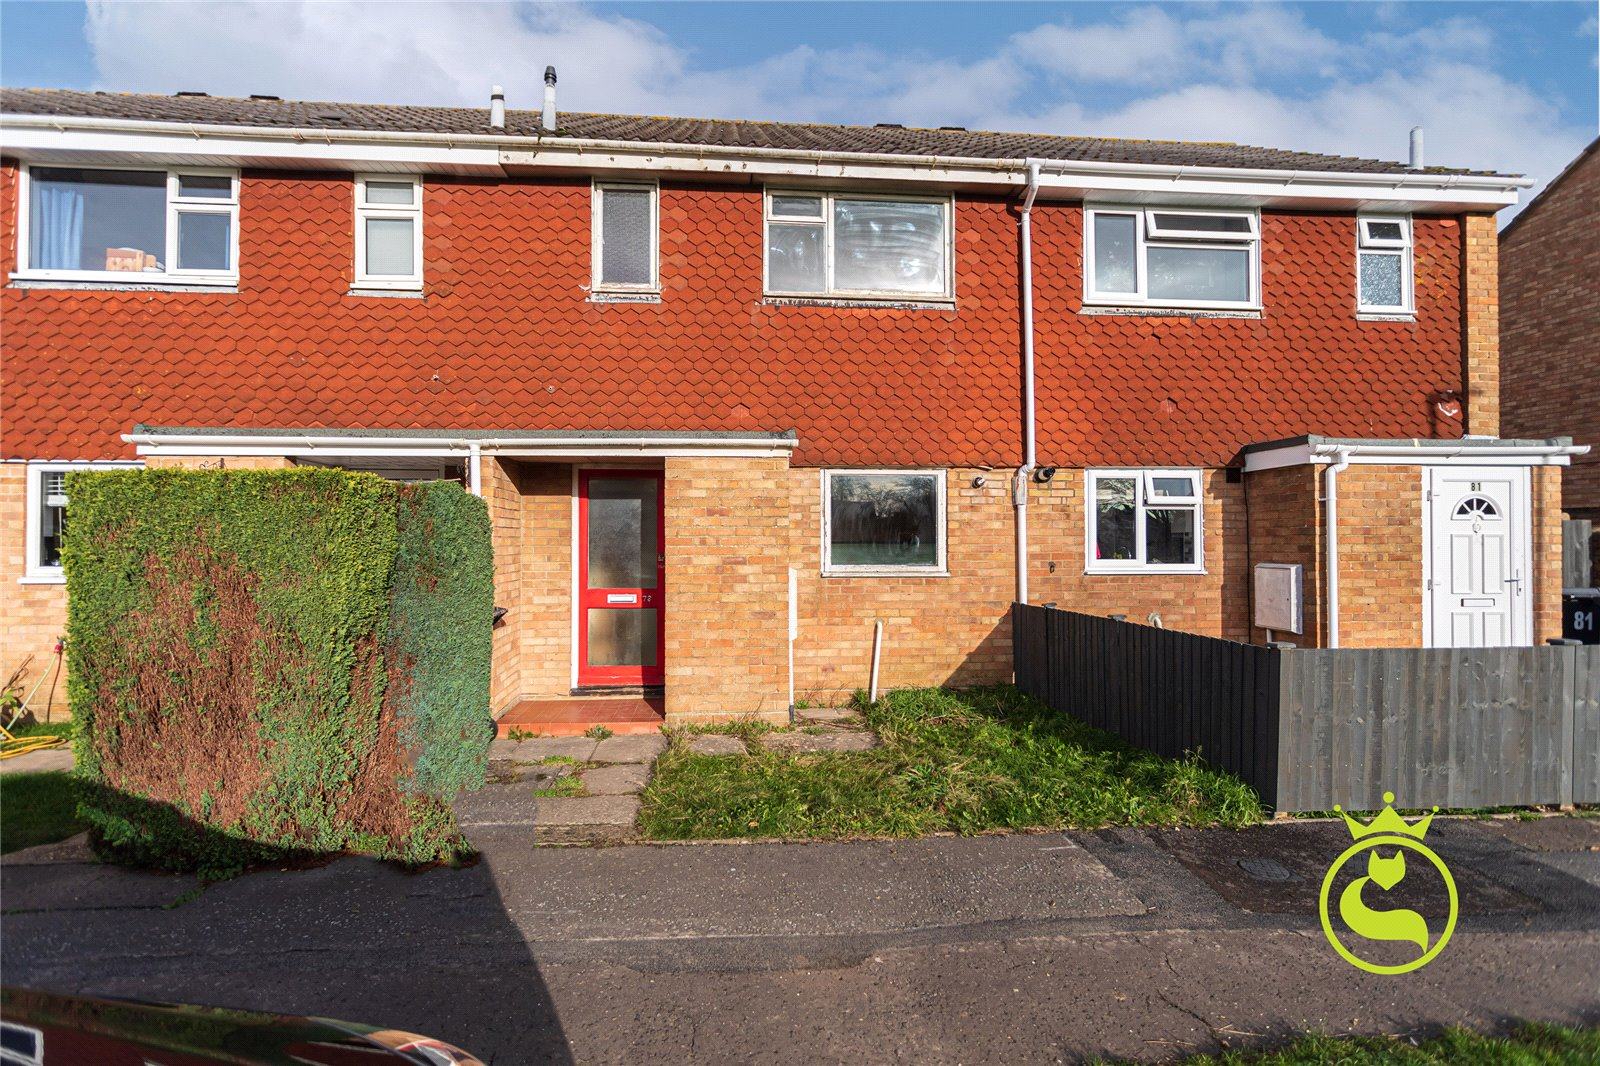 3 bed house for sale in Charlton Close, Bournemouth, BH9